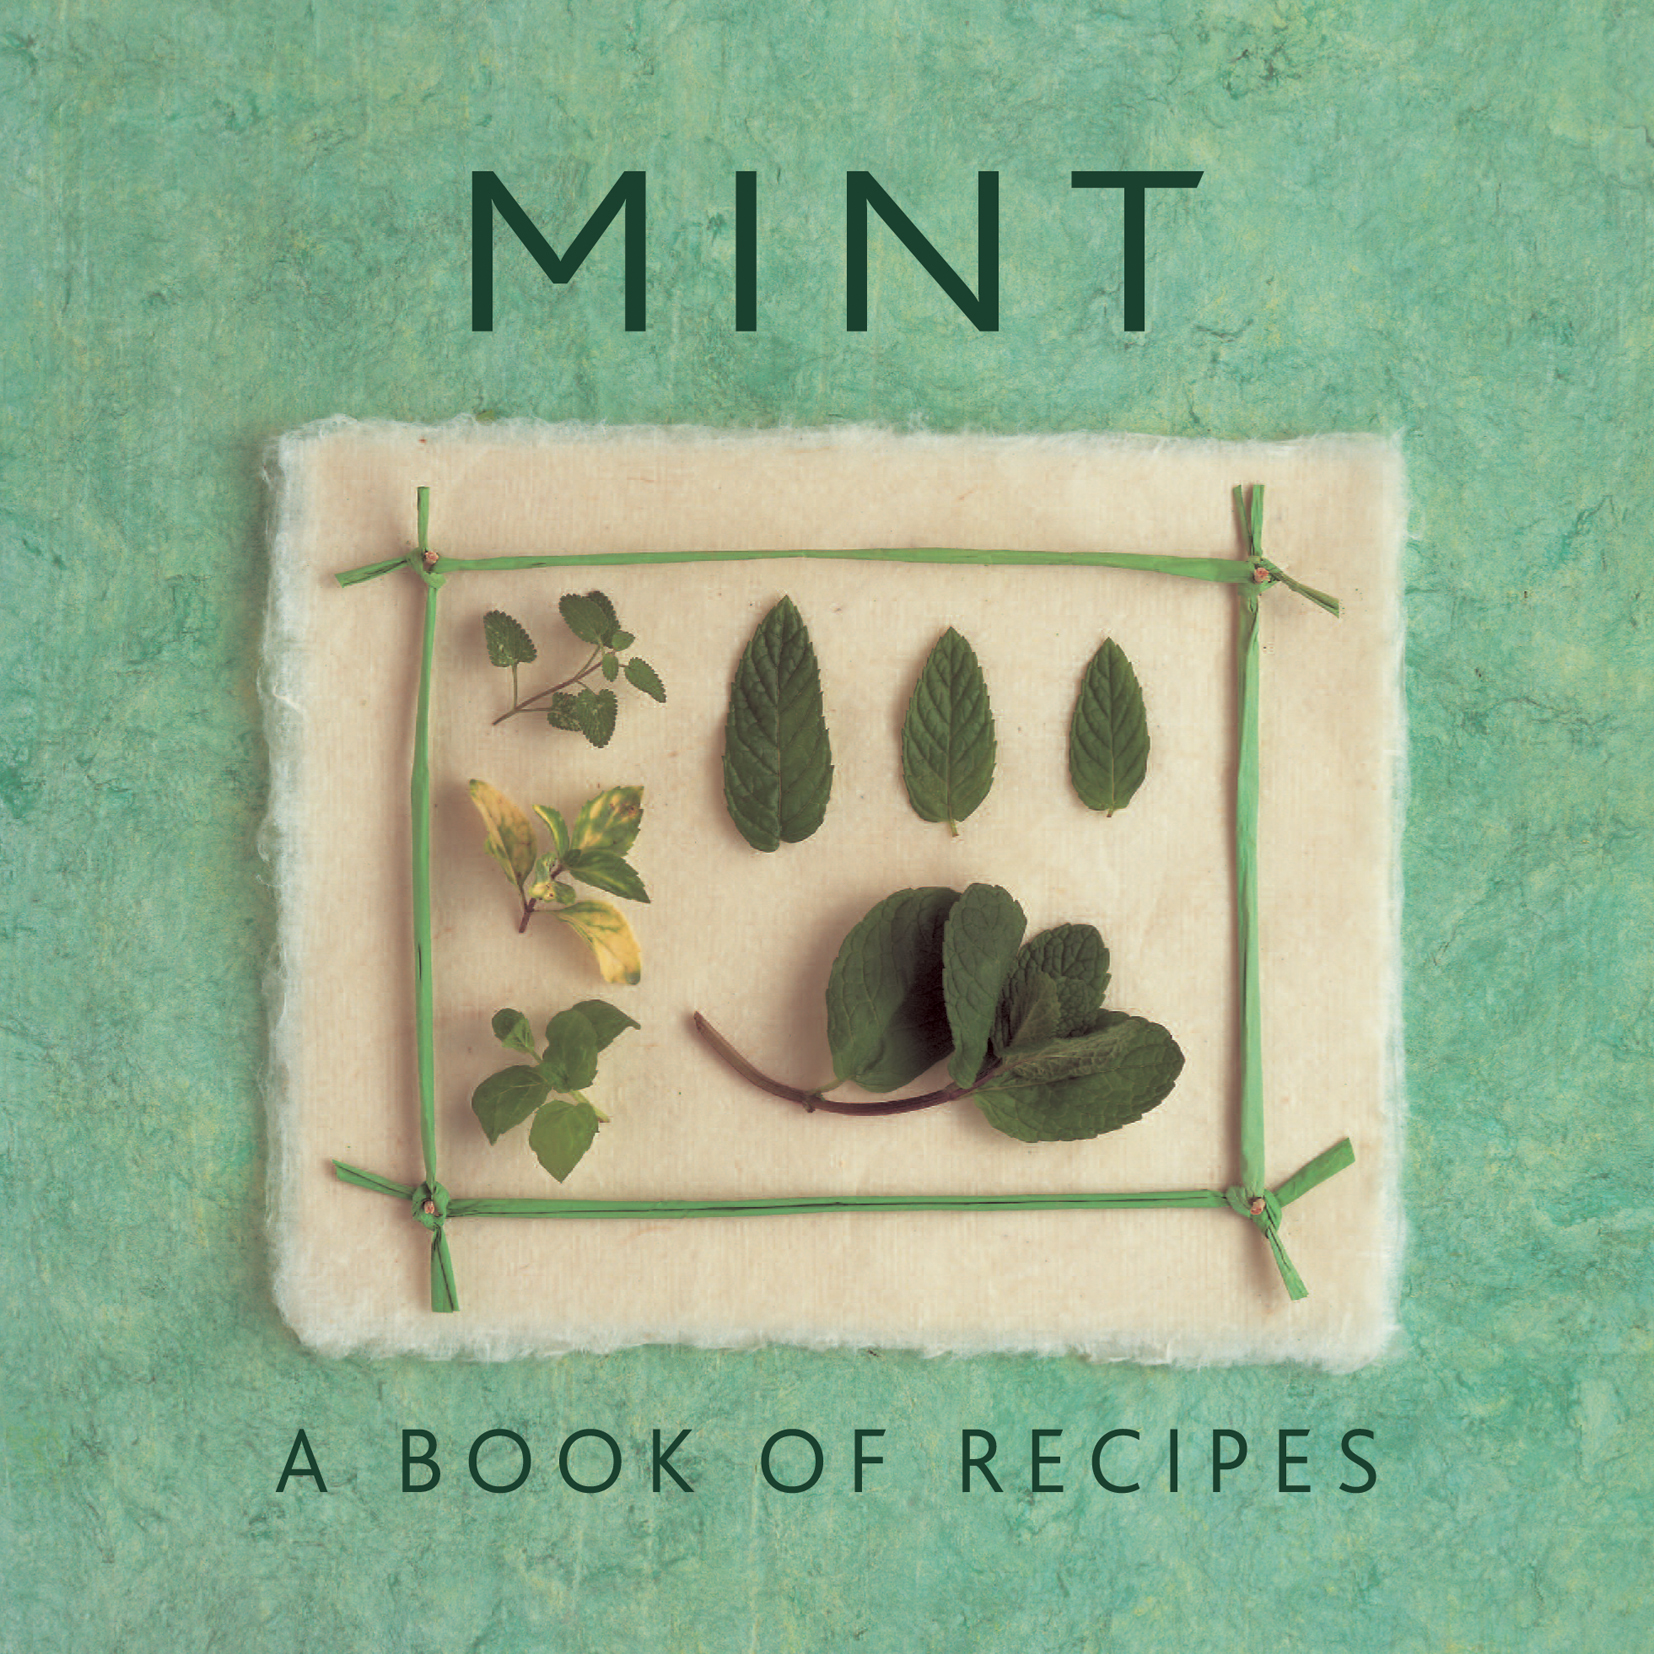 Mint A Book of Recipes